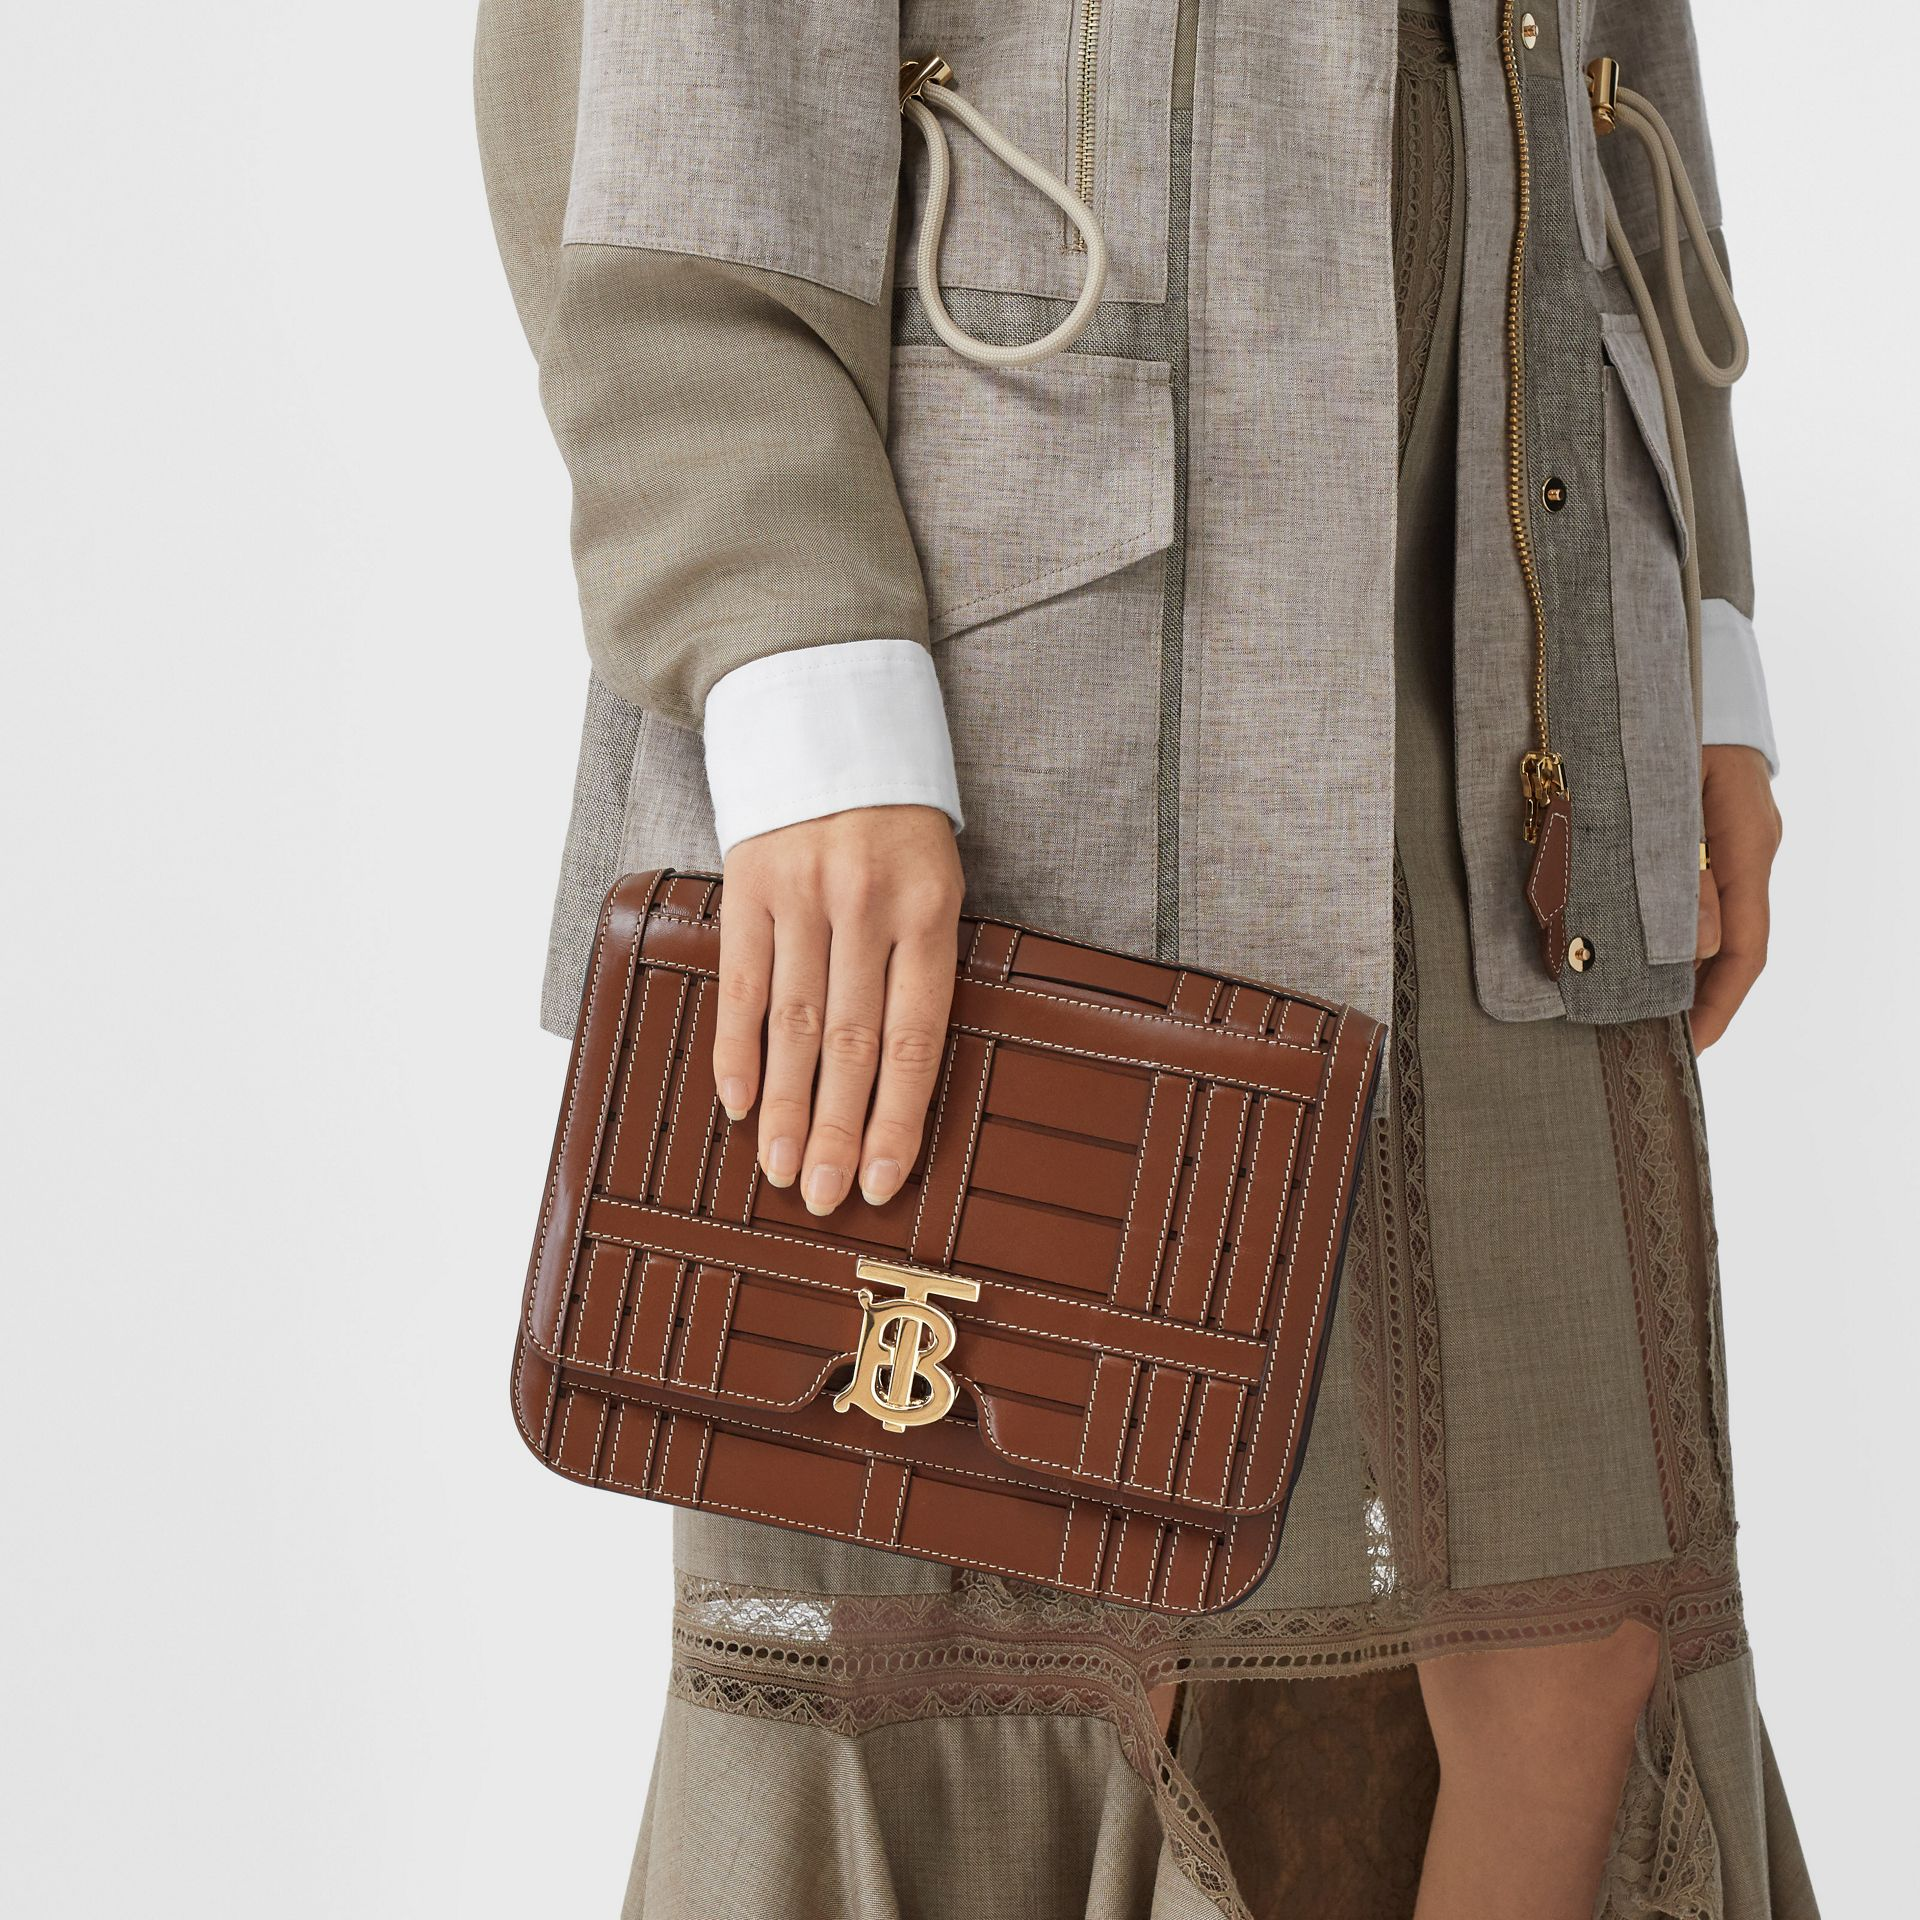 Medium Woven Leather TB Bag in Tan - Women | Burberry Canada - gallery image 8